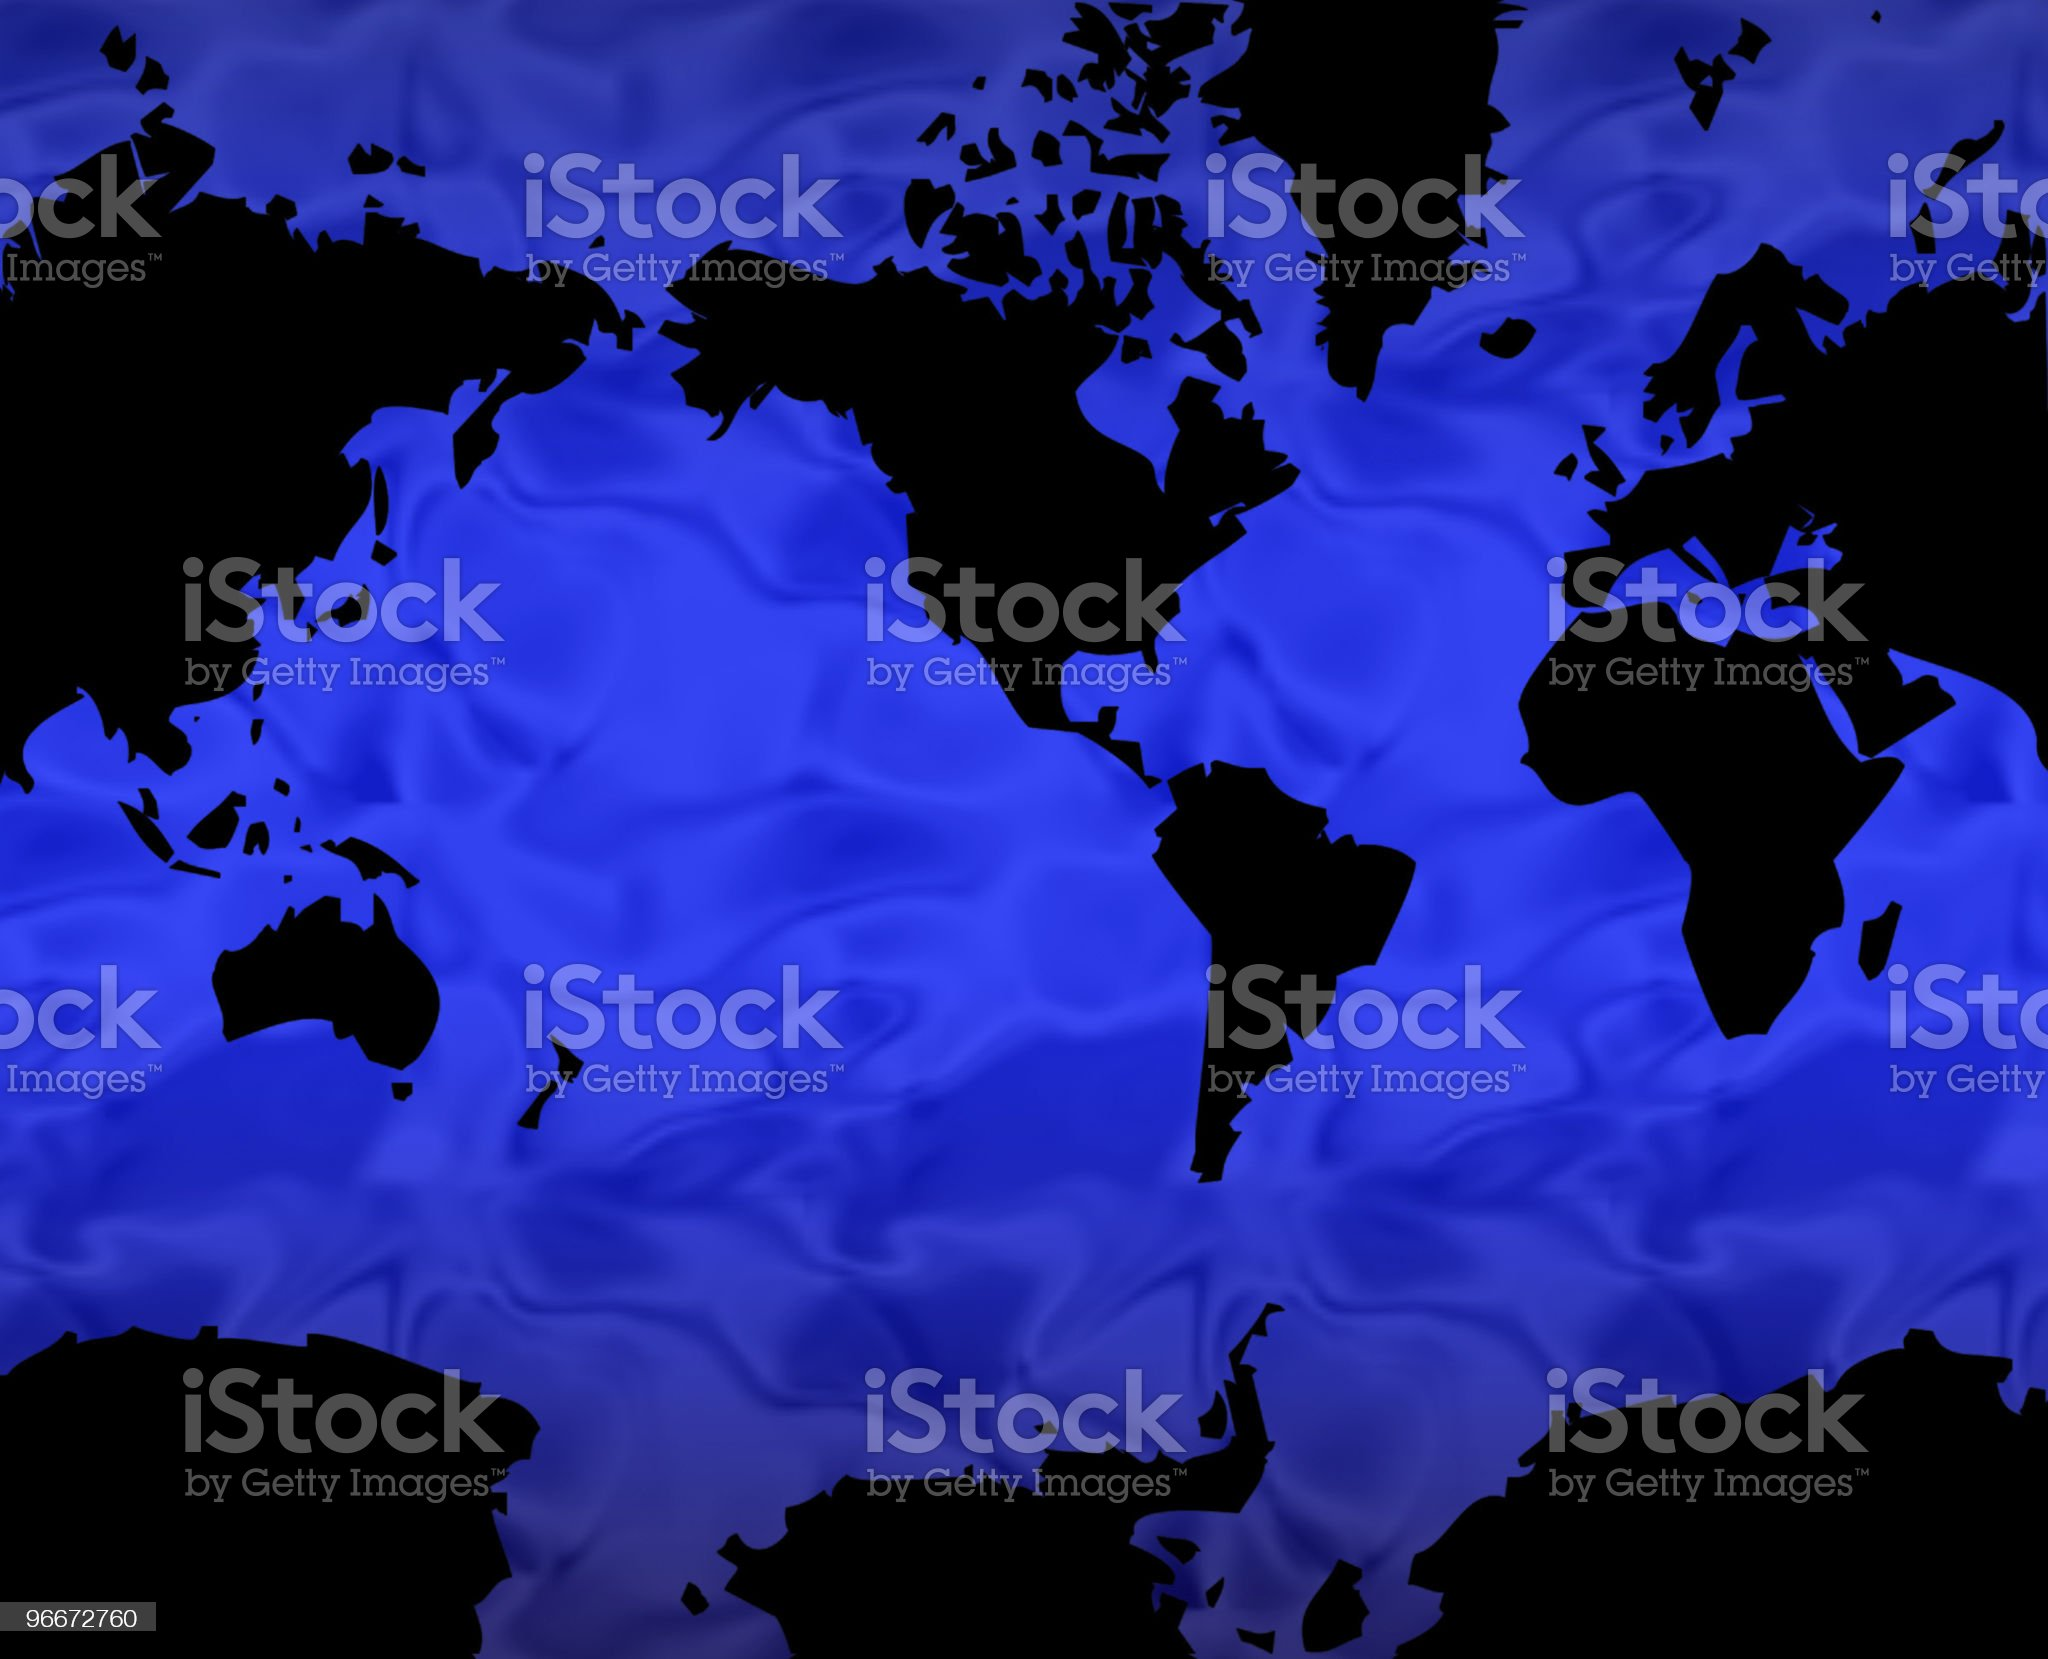 Blue Projection Map royalty-free stock vector art